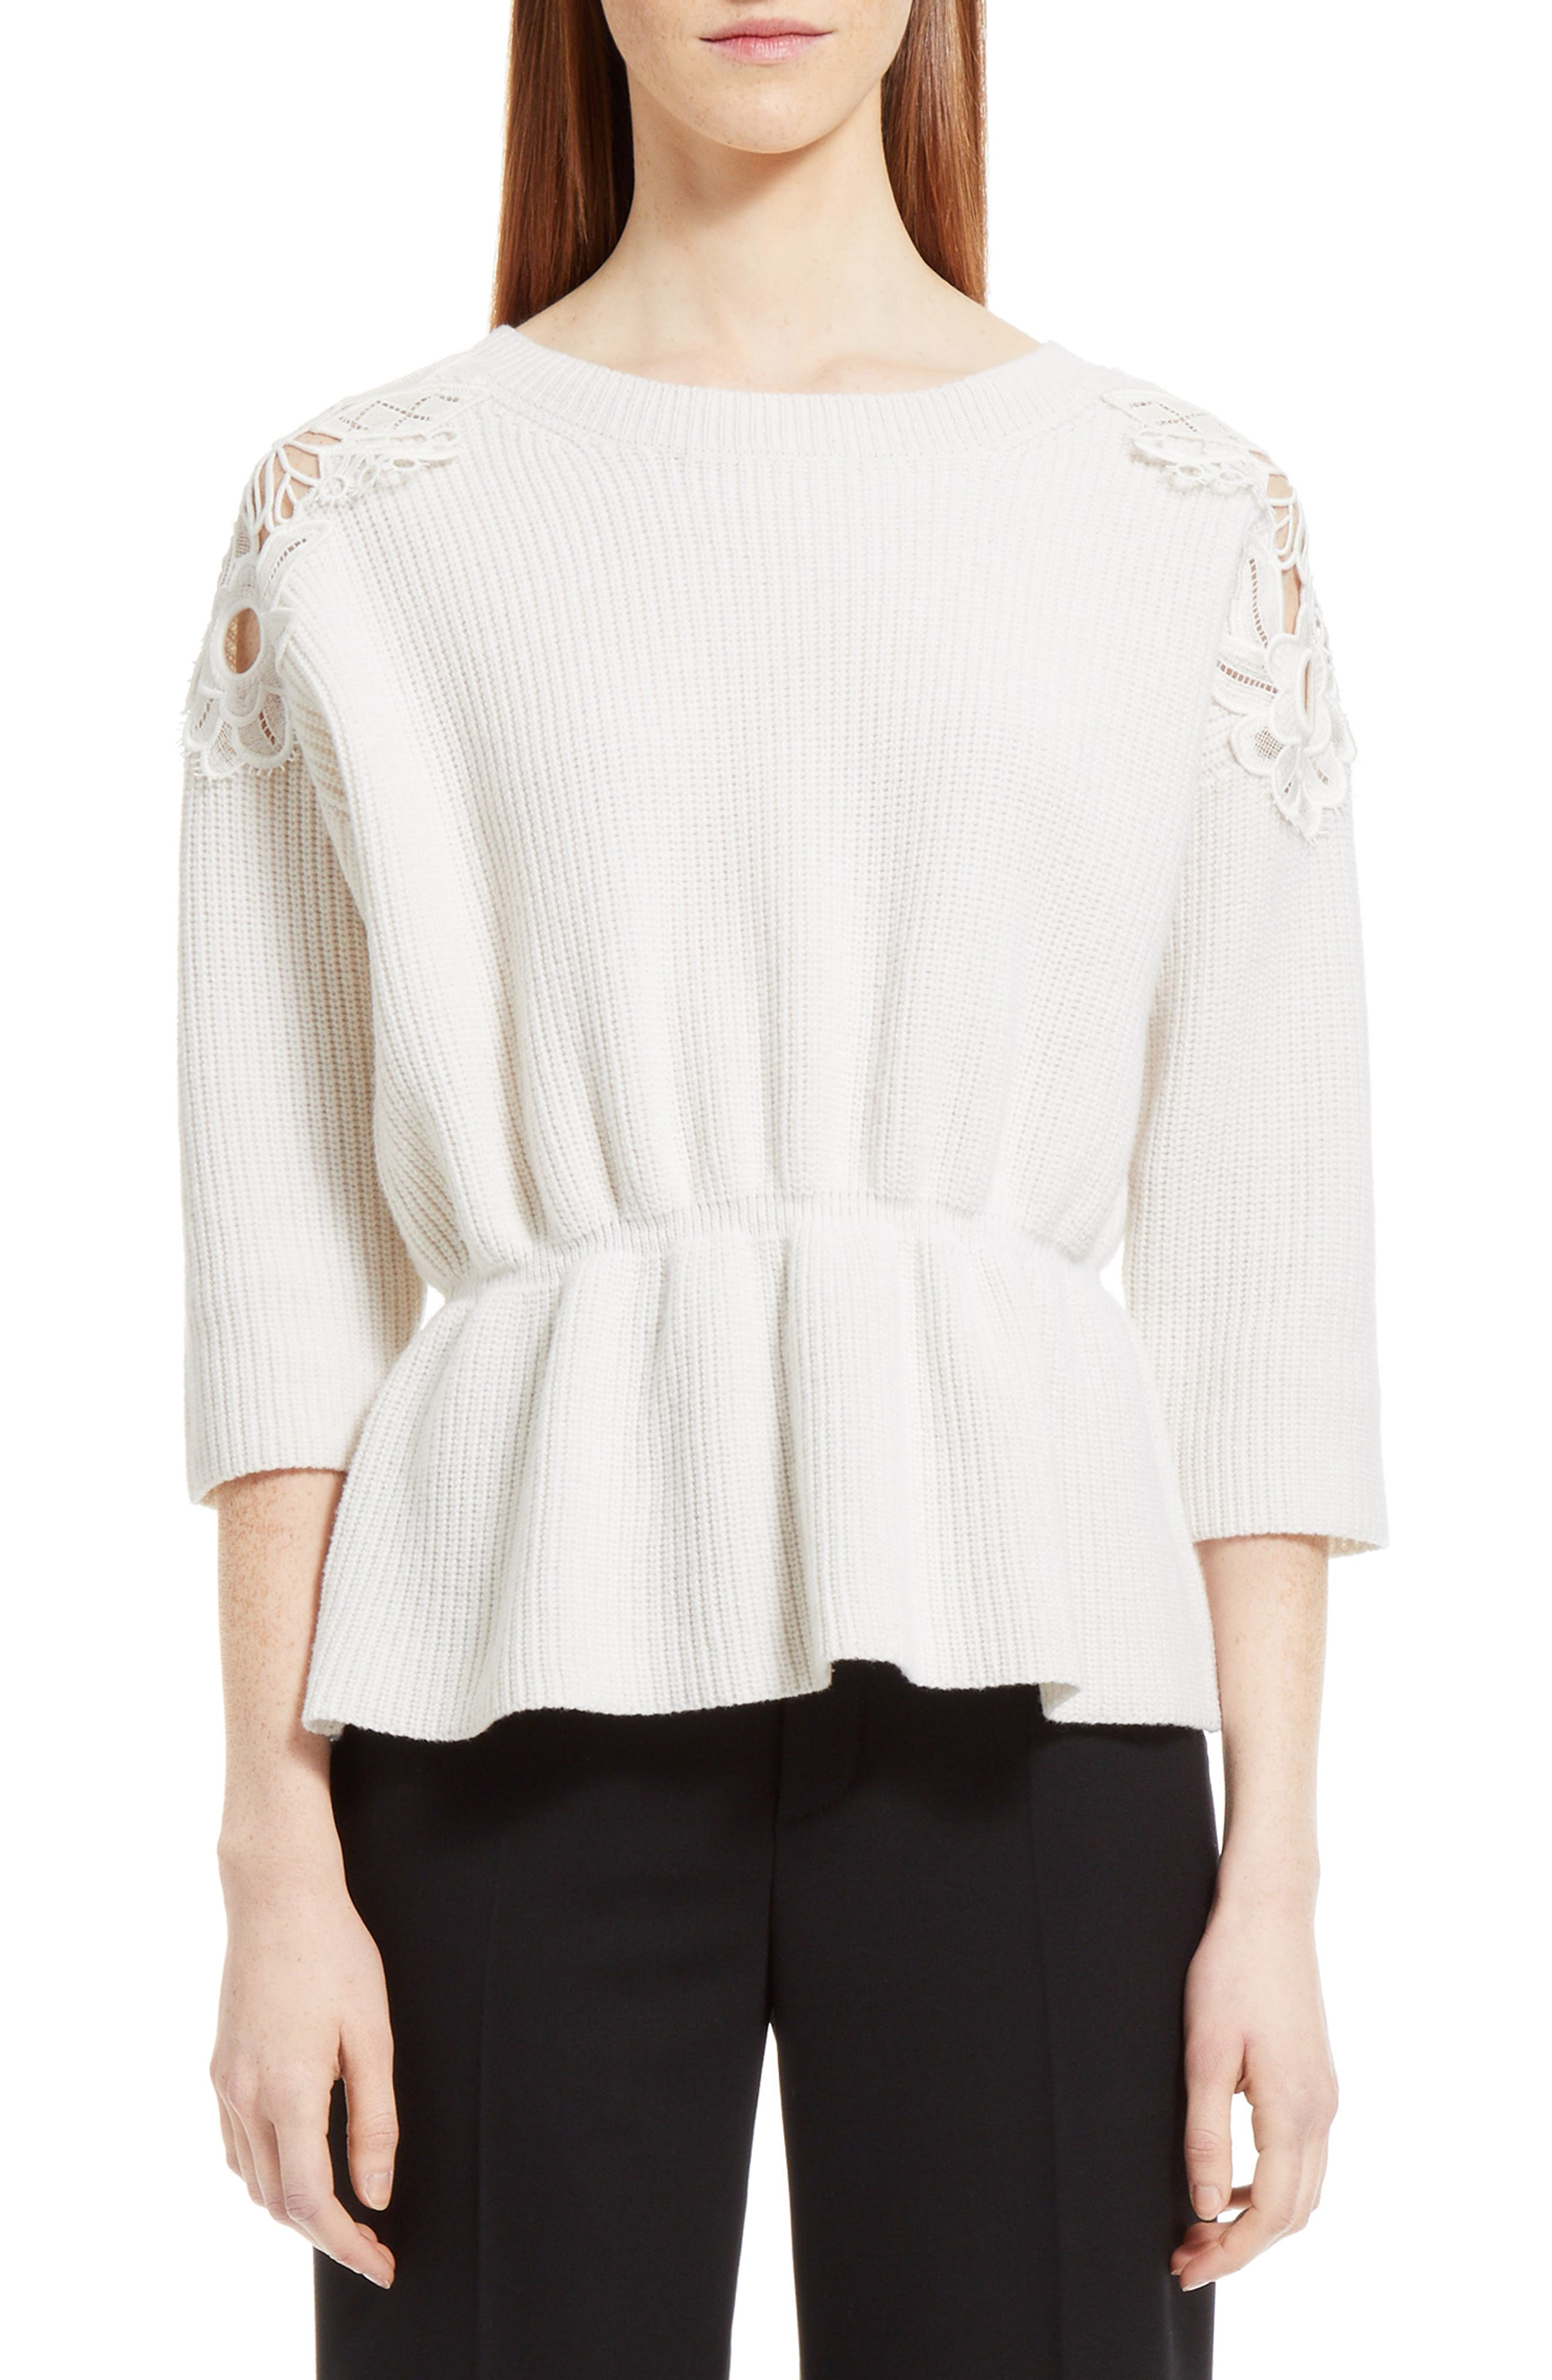 Alternate Image 1 Selected - Chloé Lace Trim Merino Wool & Cashmere Sweater